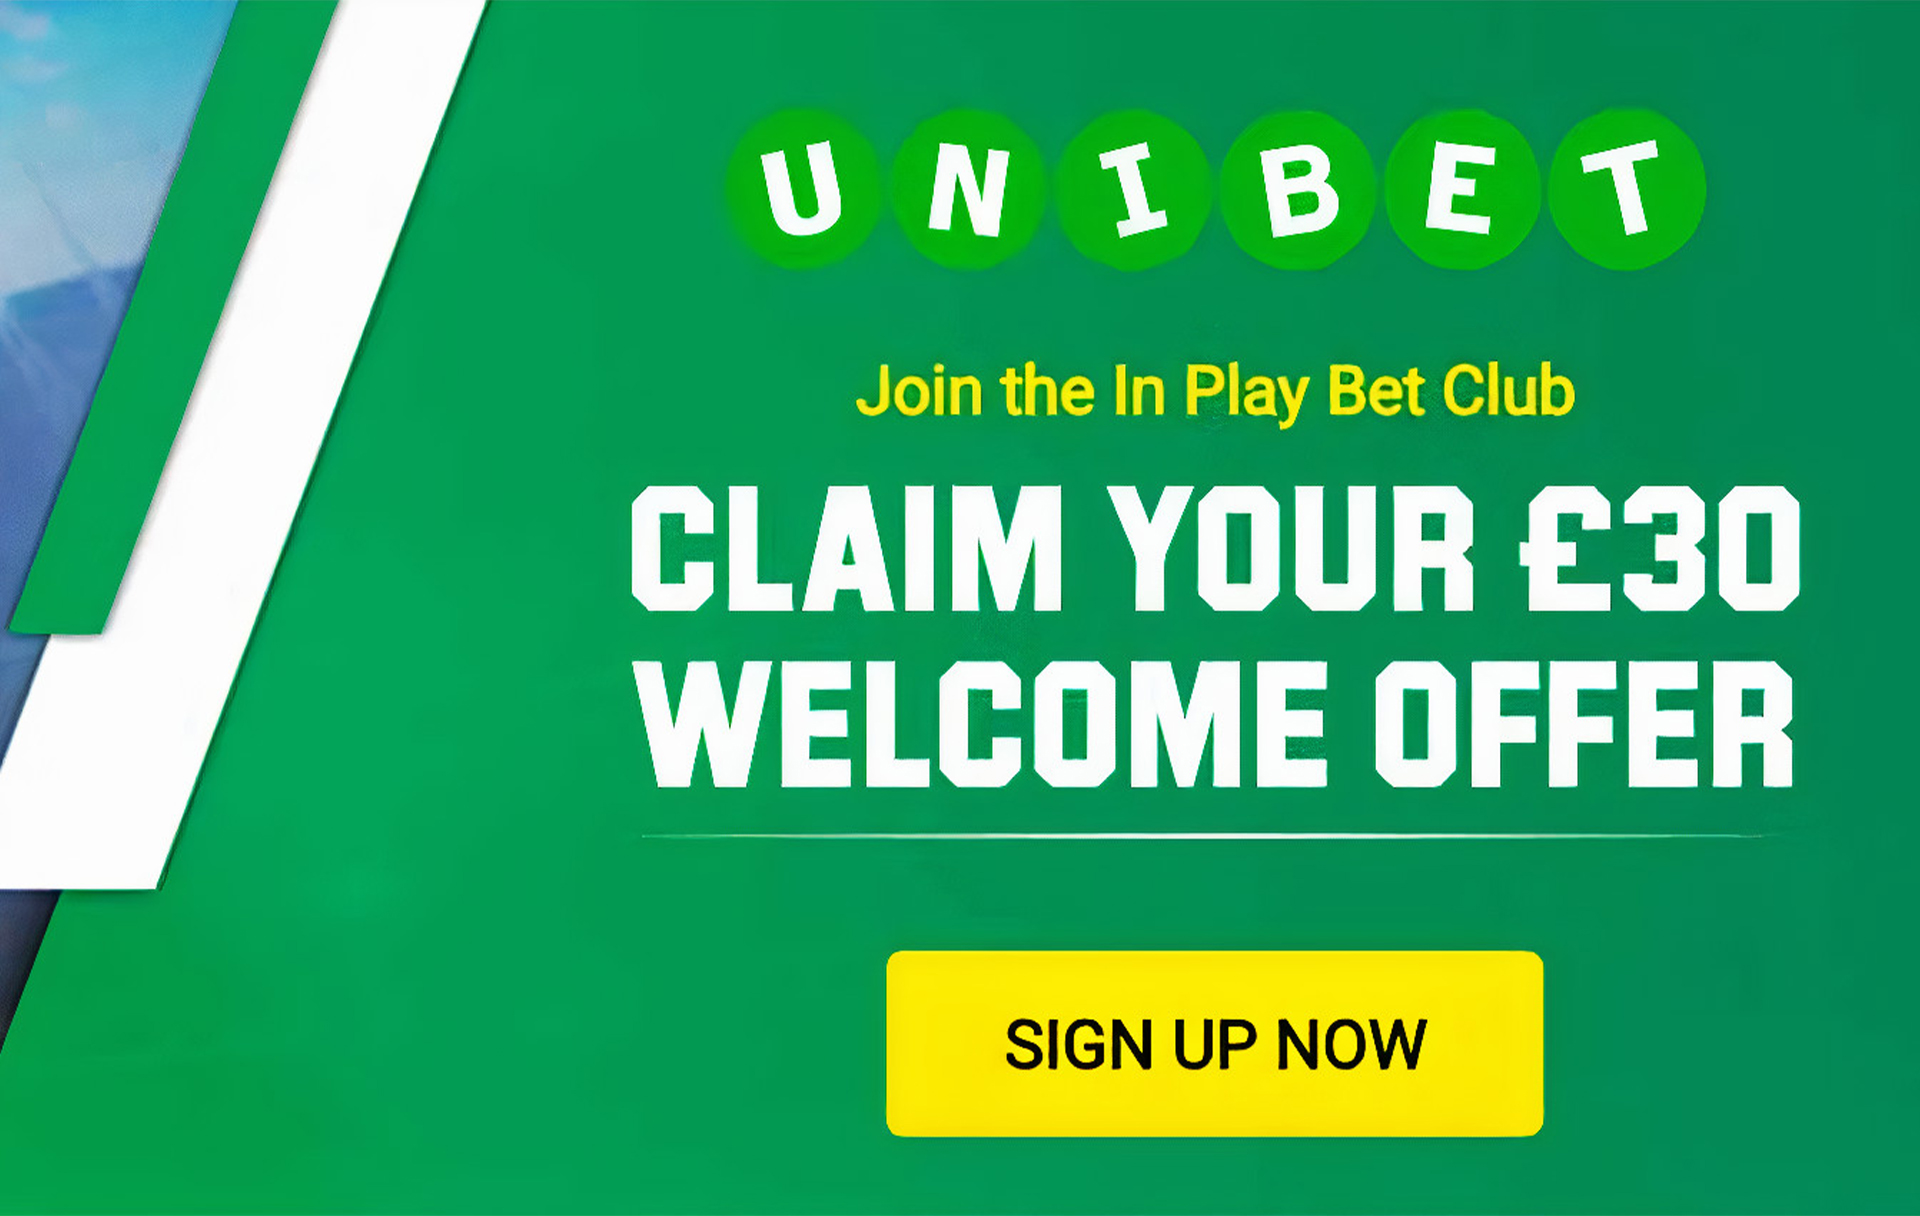 There are a lot of welcome, and first deposit bonuses at betting apps.